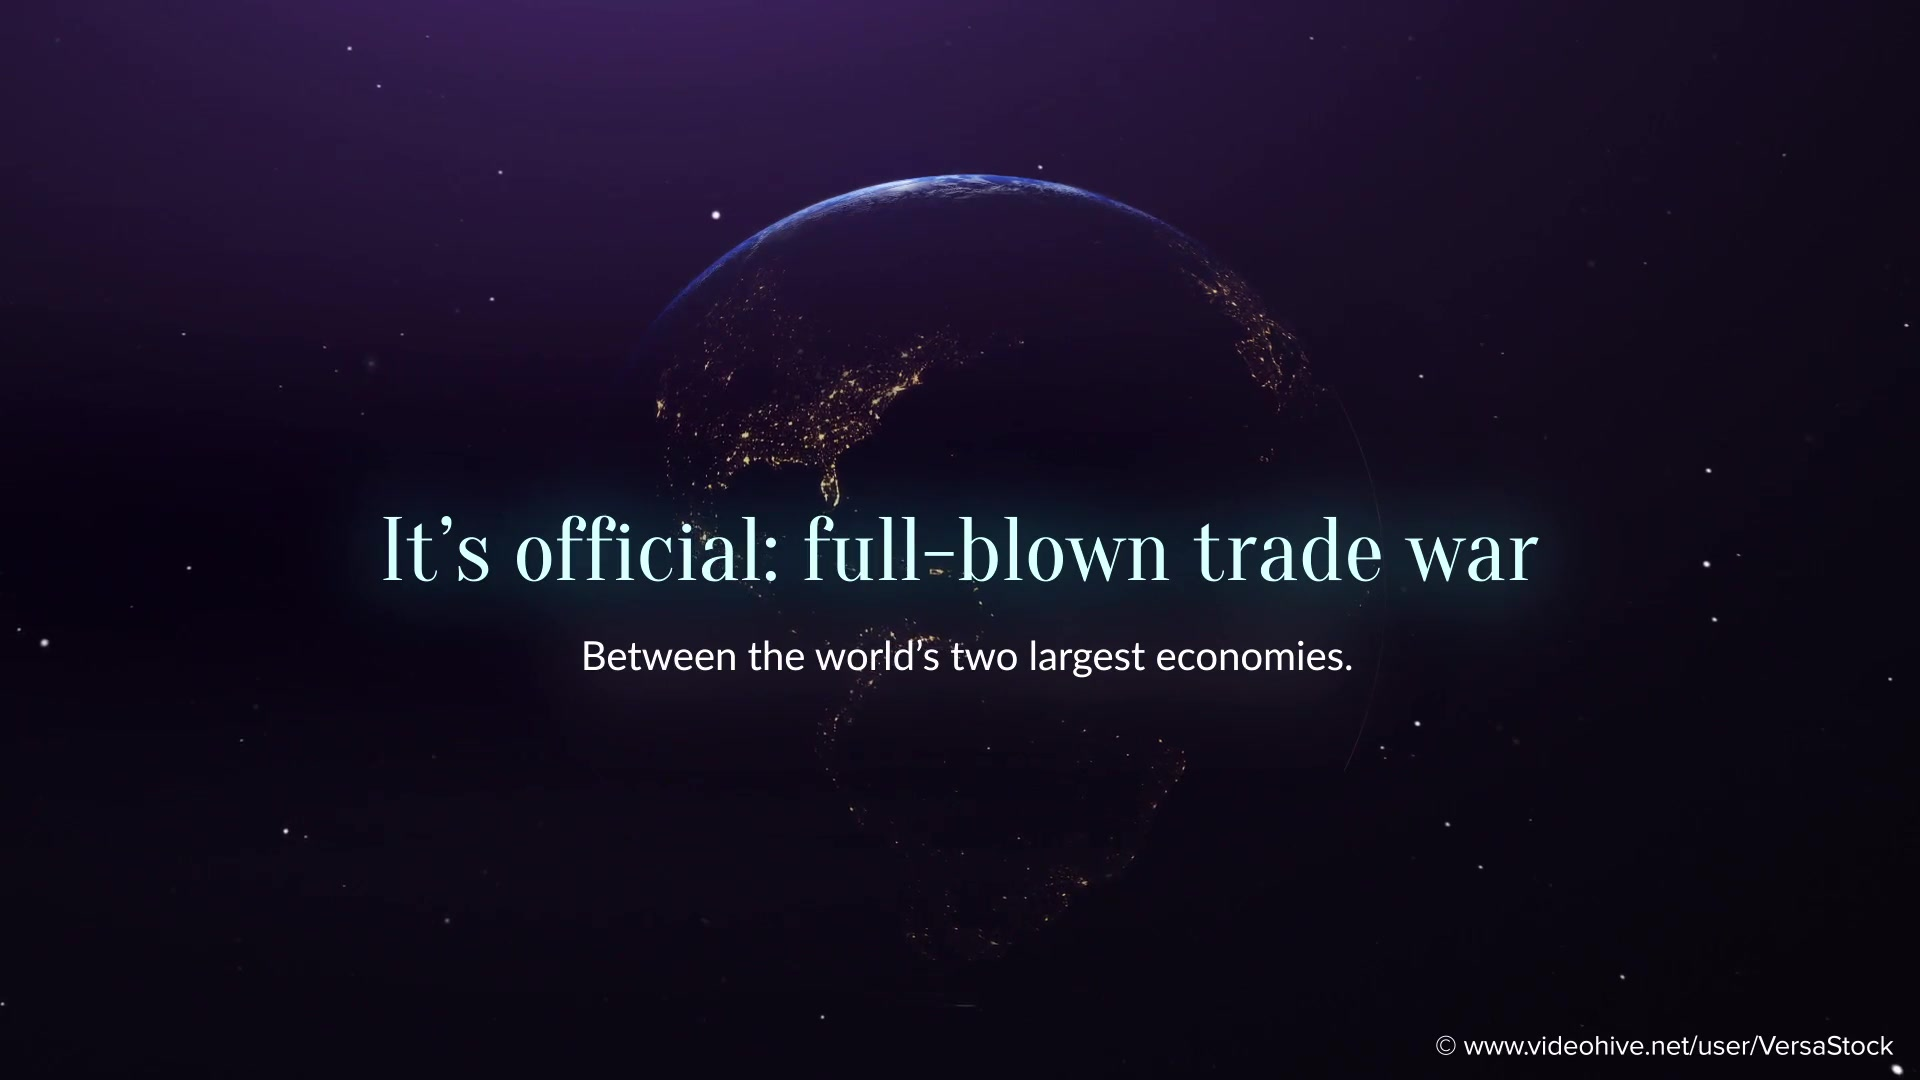 Global Economics From Space Infographics Videohive 25031384 After Effects Image 6